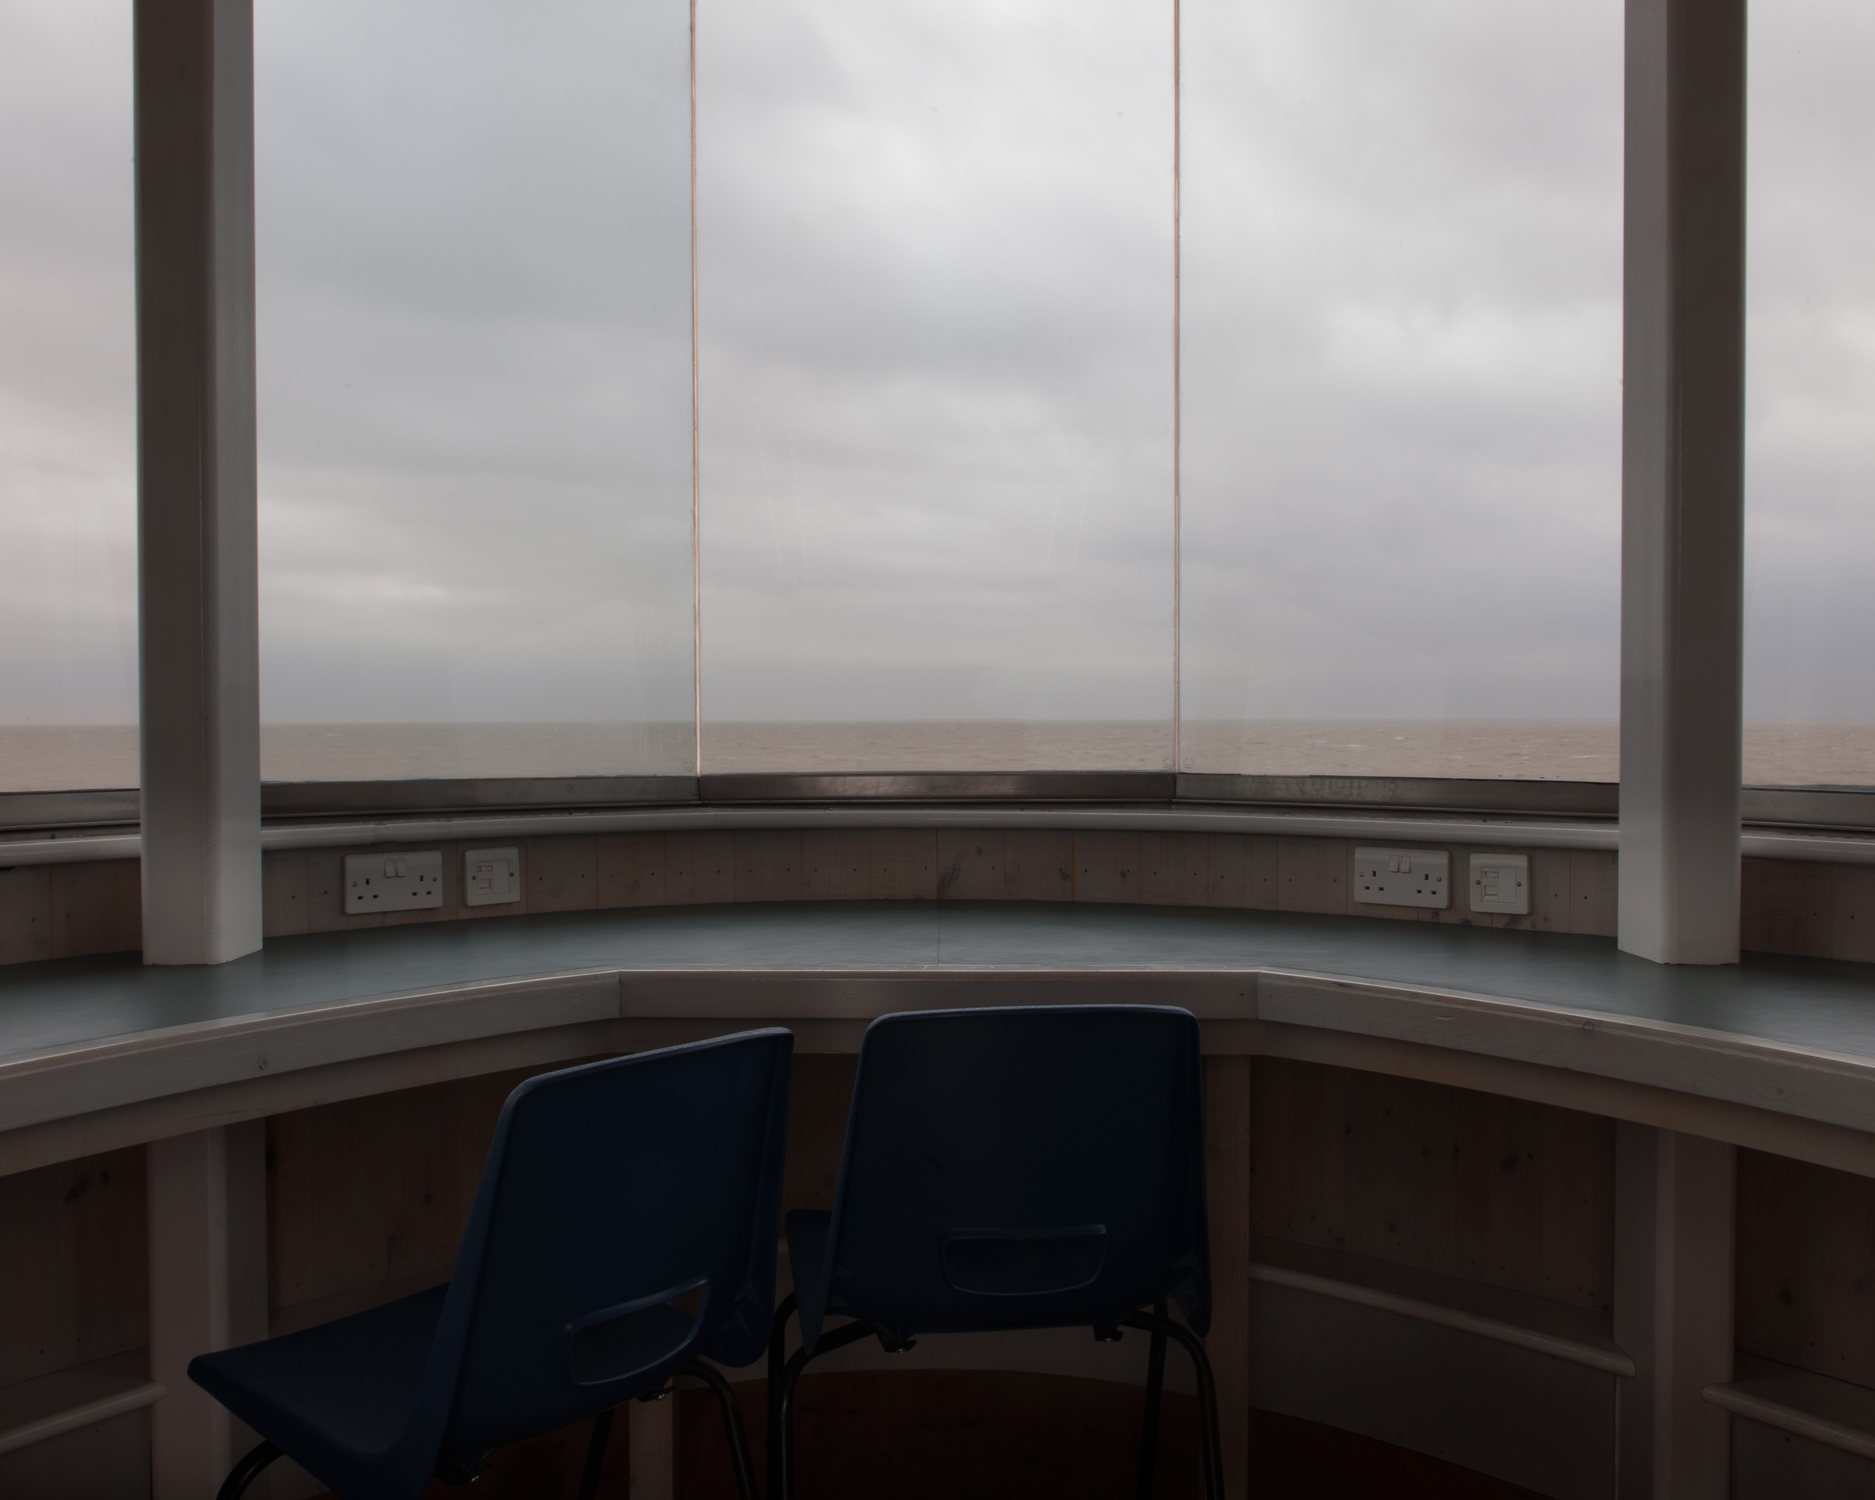 The view from Jaywick martello tower. In 1953 Jaywick, like the rest of the east coast, was hit by the largest tidal surge in modern times. The flood claimed the lives of 35 people and decimated the entire village.